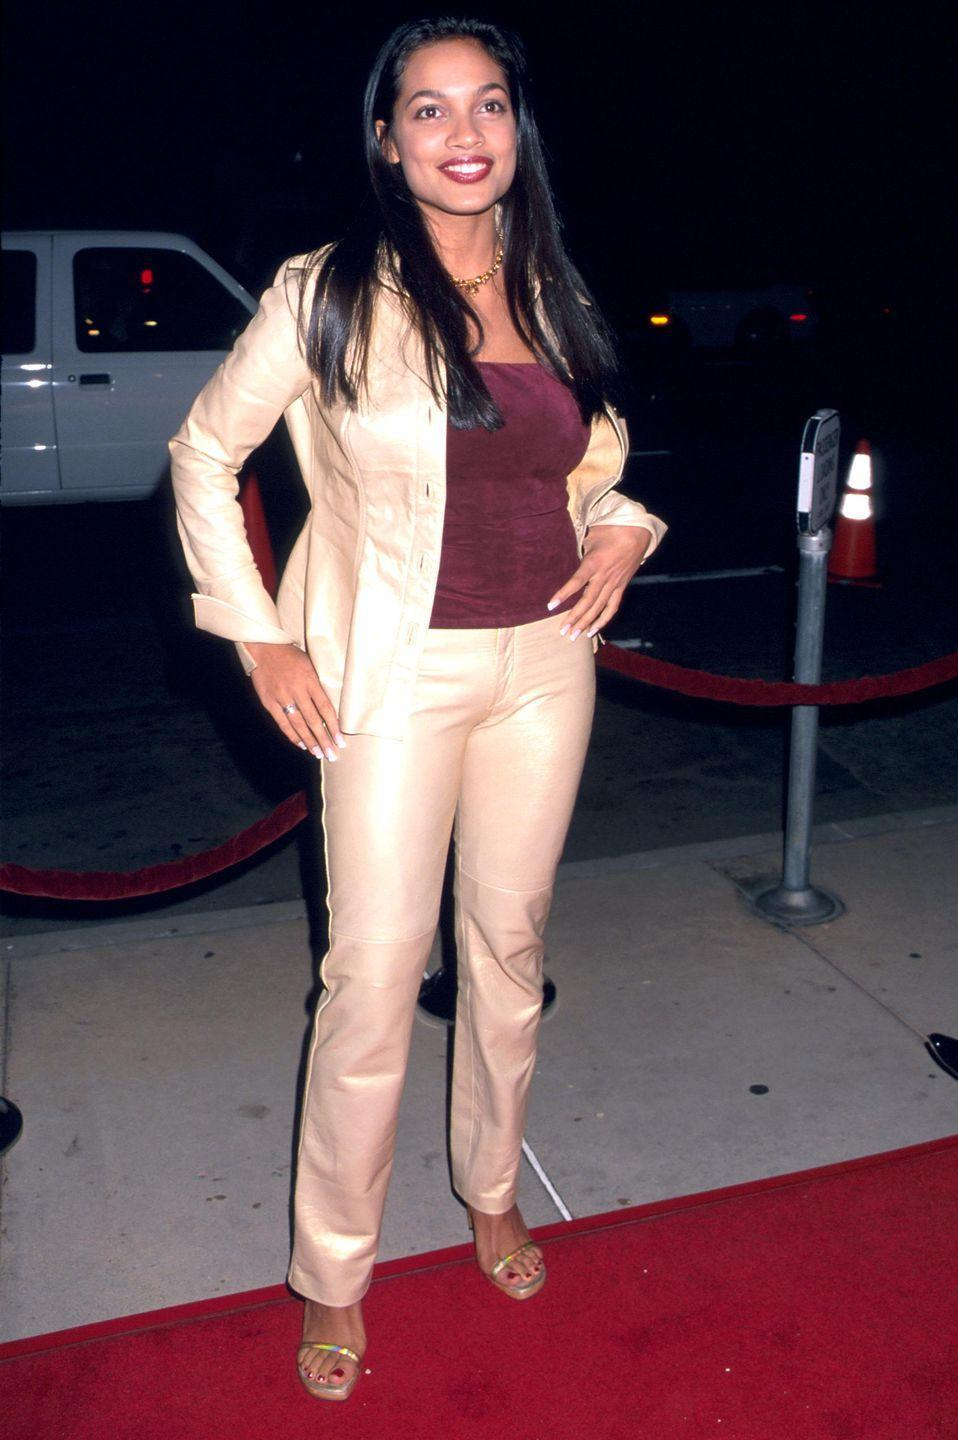 <p>At the <em>Light It Up </em>film premiere, Rosario wore a metallic suit with a burgundy top, which happened to match her lipstick color perfectly.</p>